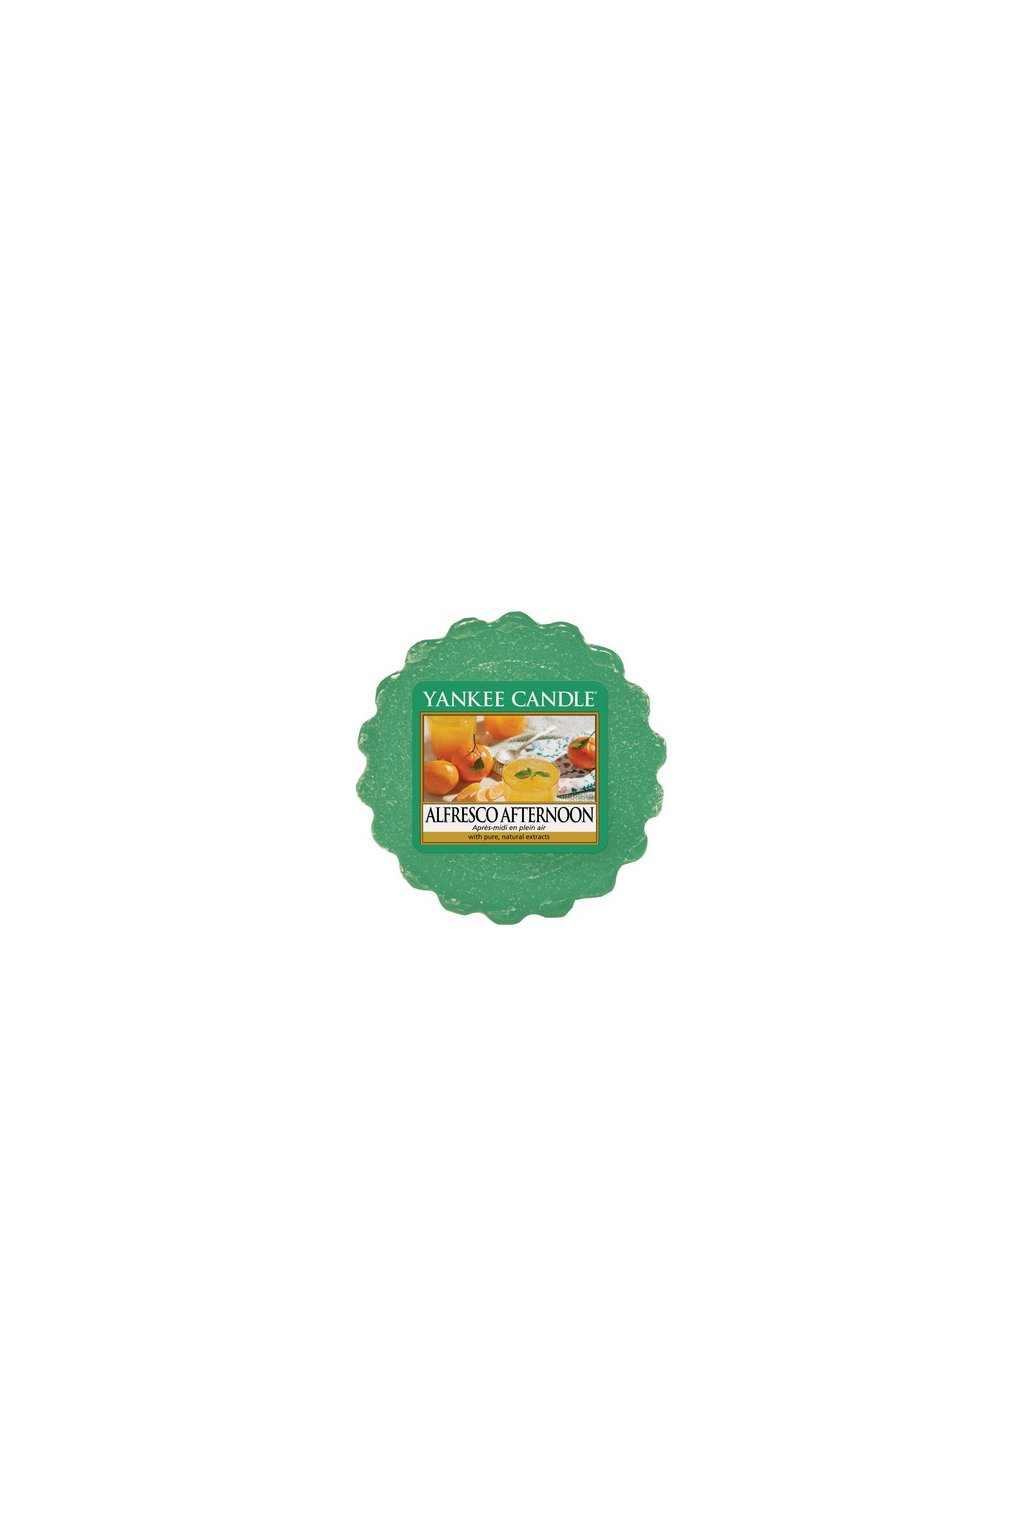 Yankee Candle Alfresco Afternoon 22g